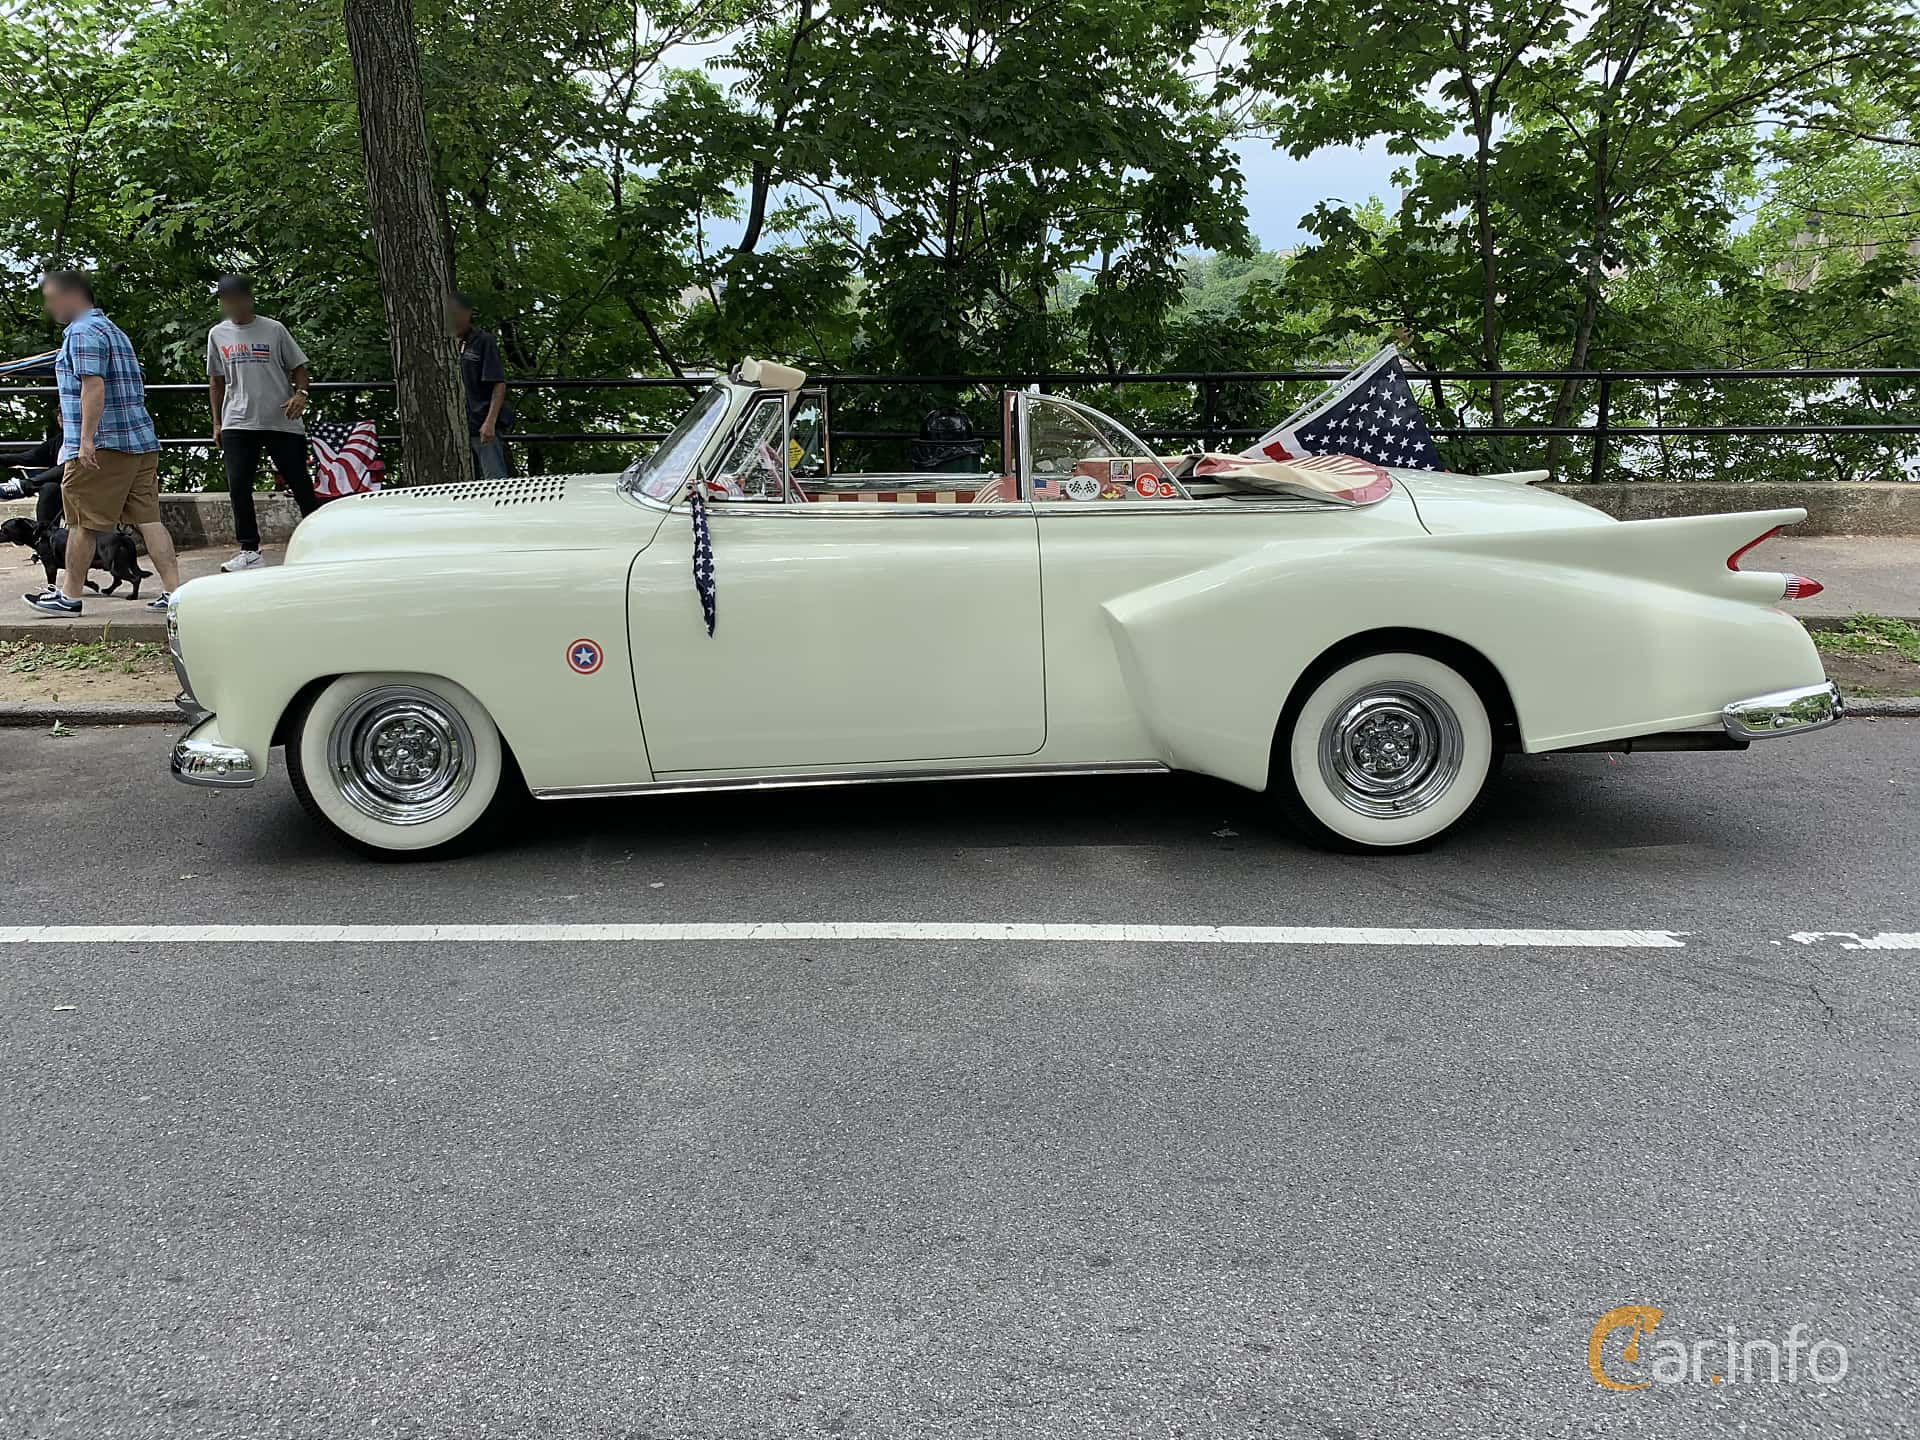 Chevrolet Styleline Deluxe Convertible Coupé 3.5 Manual, 91hp, 1949 at Father's Day Classic Car Show New York 2019